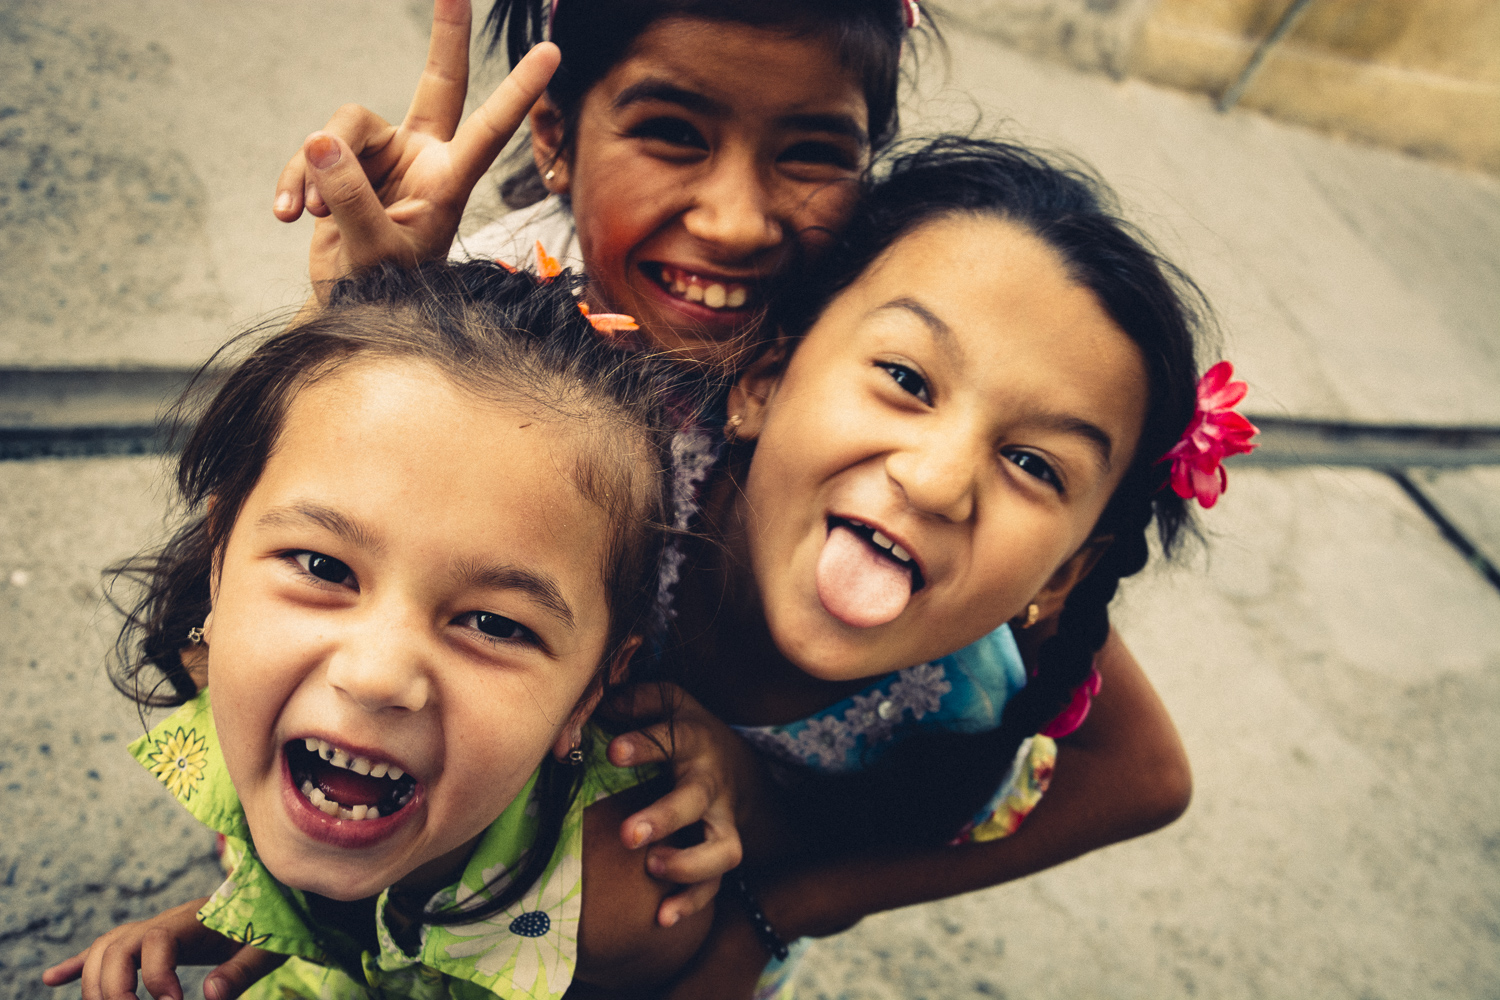 Close up Image of three young girls, laughing into the camera in the jewish quarter in Samarkand, Uzbekistan.